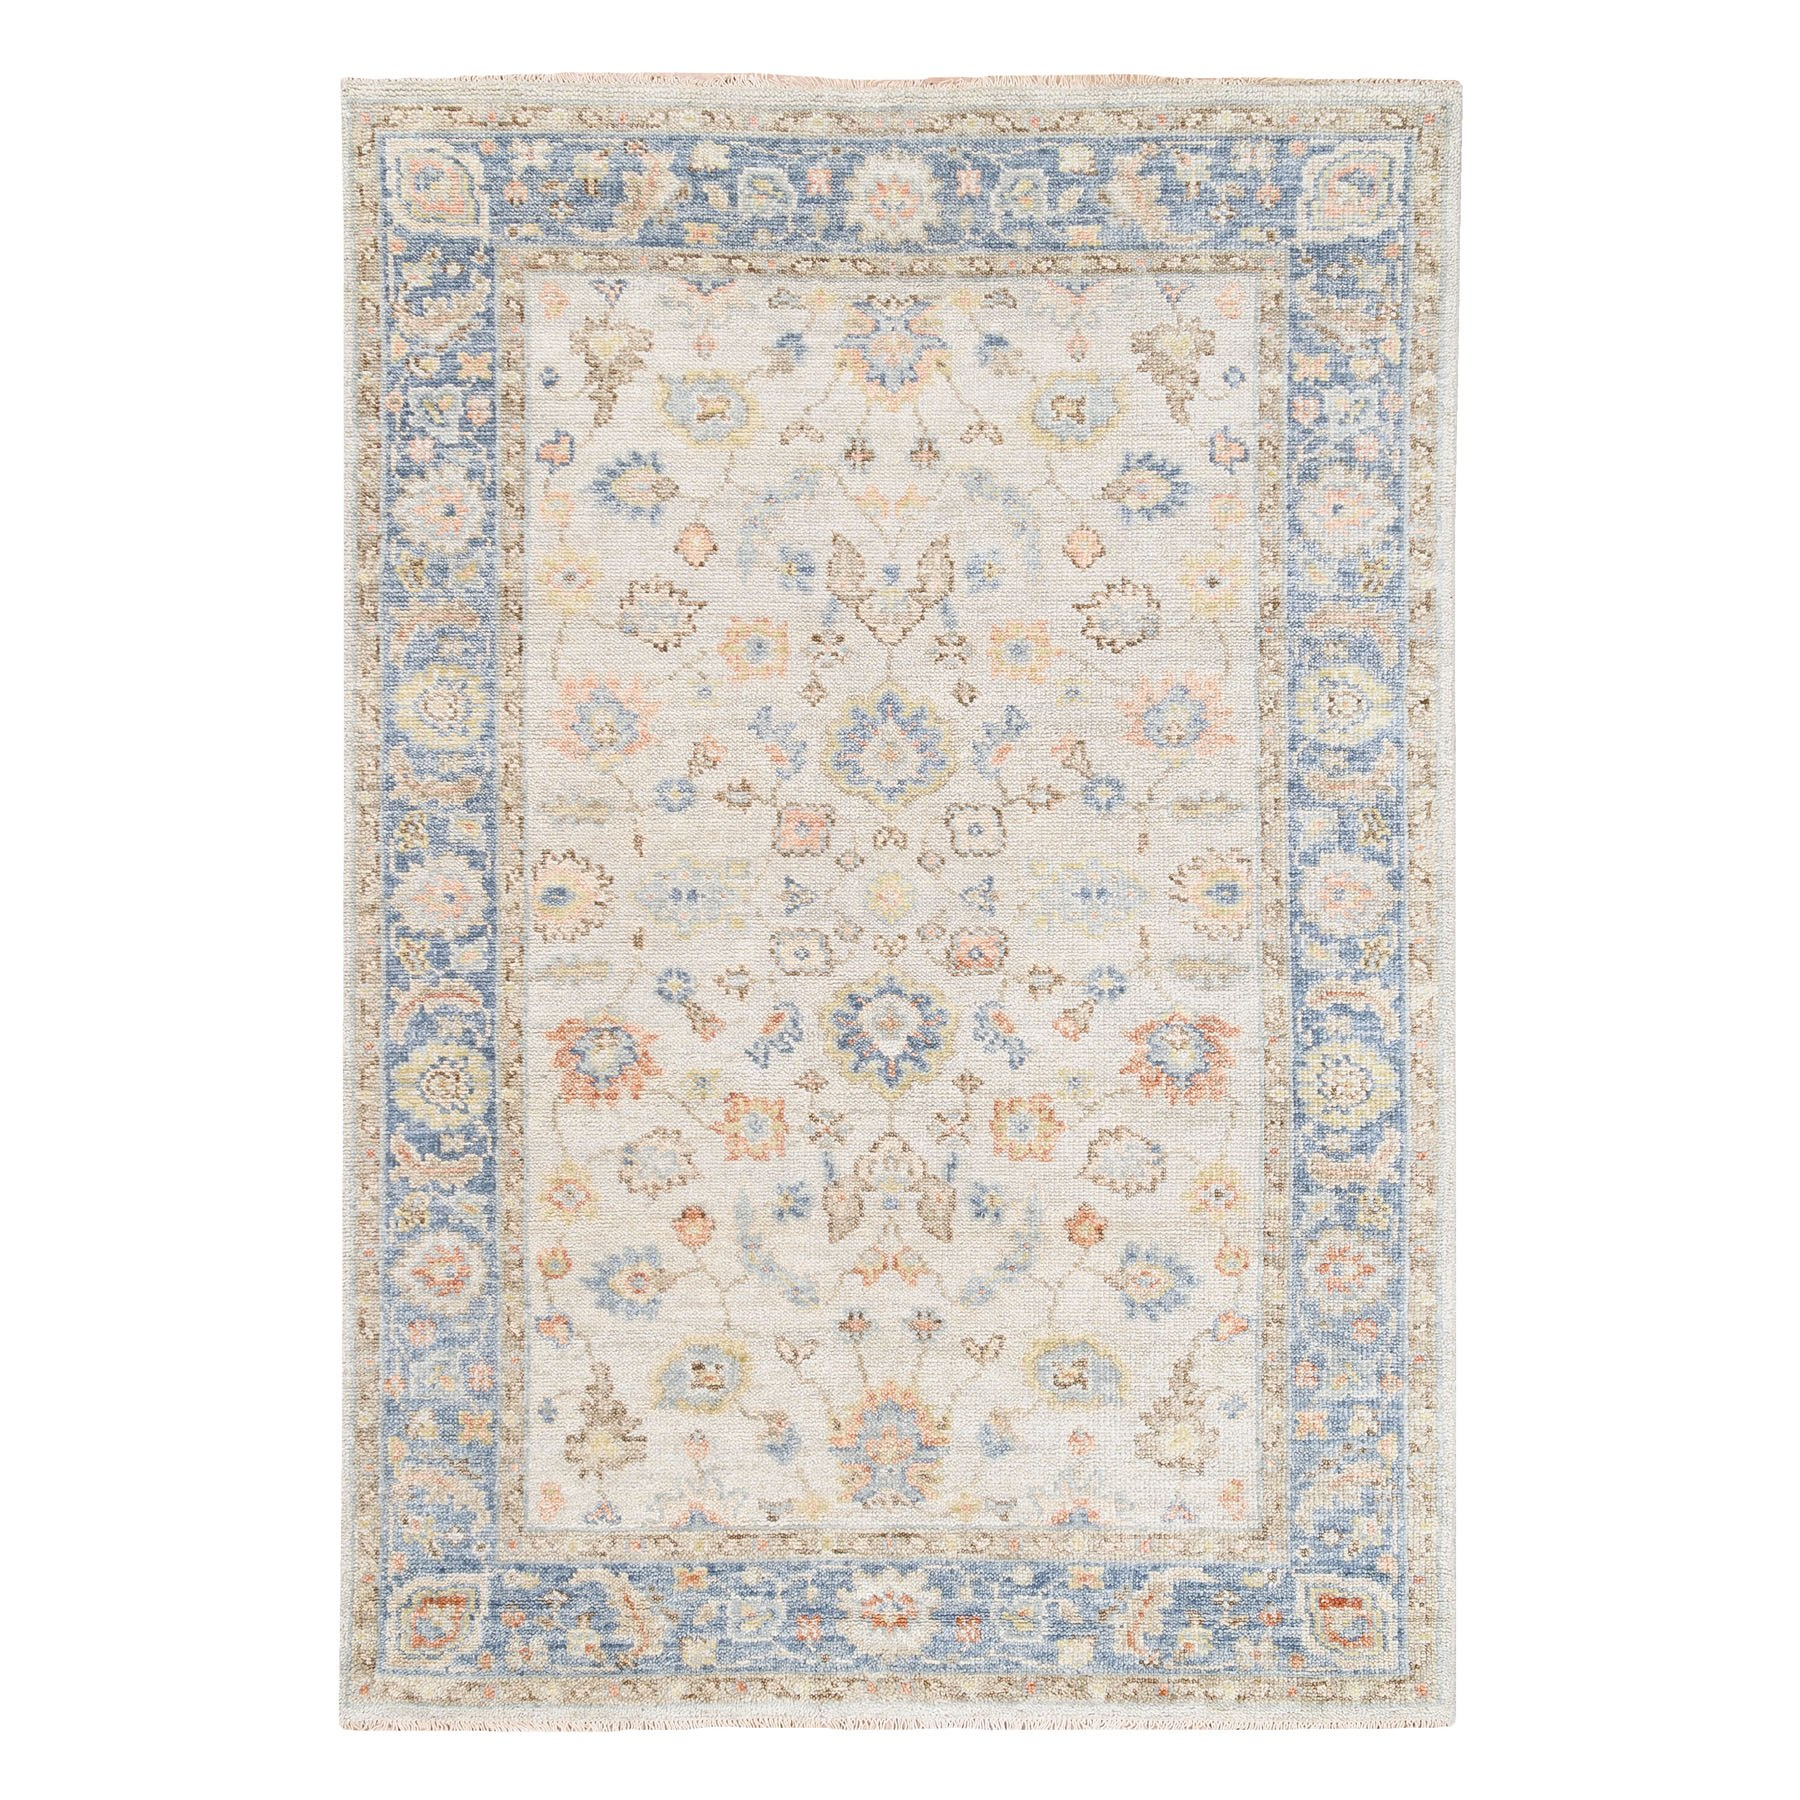 "6'x8'10"" Ivory-Blue Supple Collection Oushak Design Organic Wool Hand Knotted Oriental Rug"